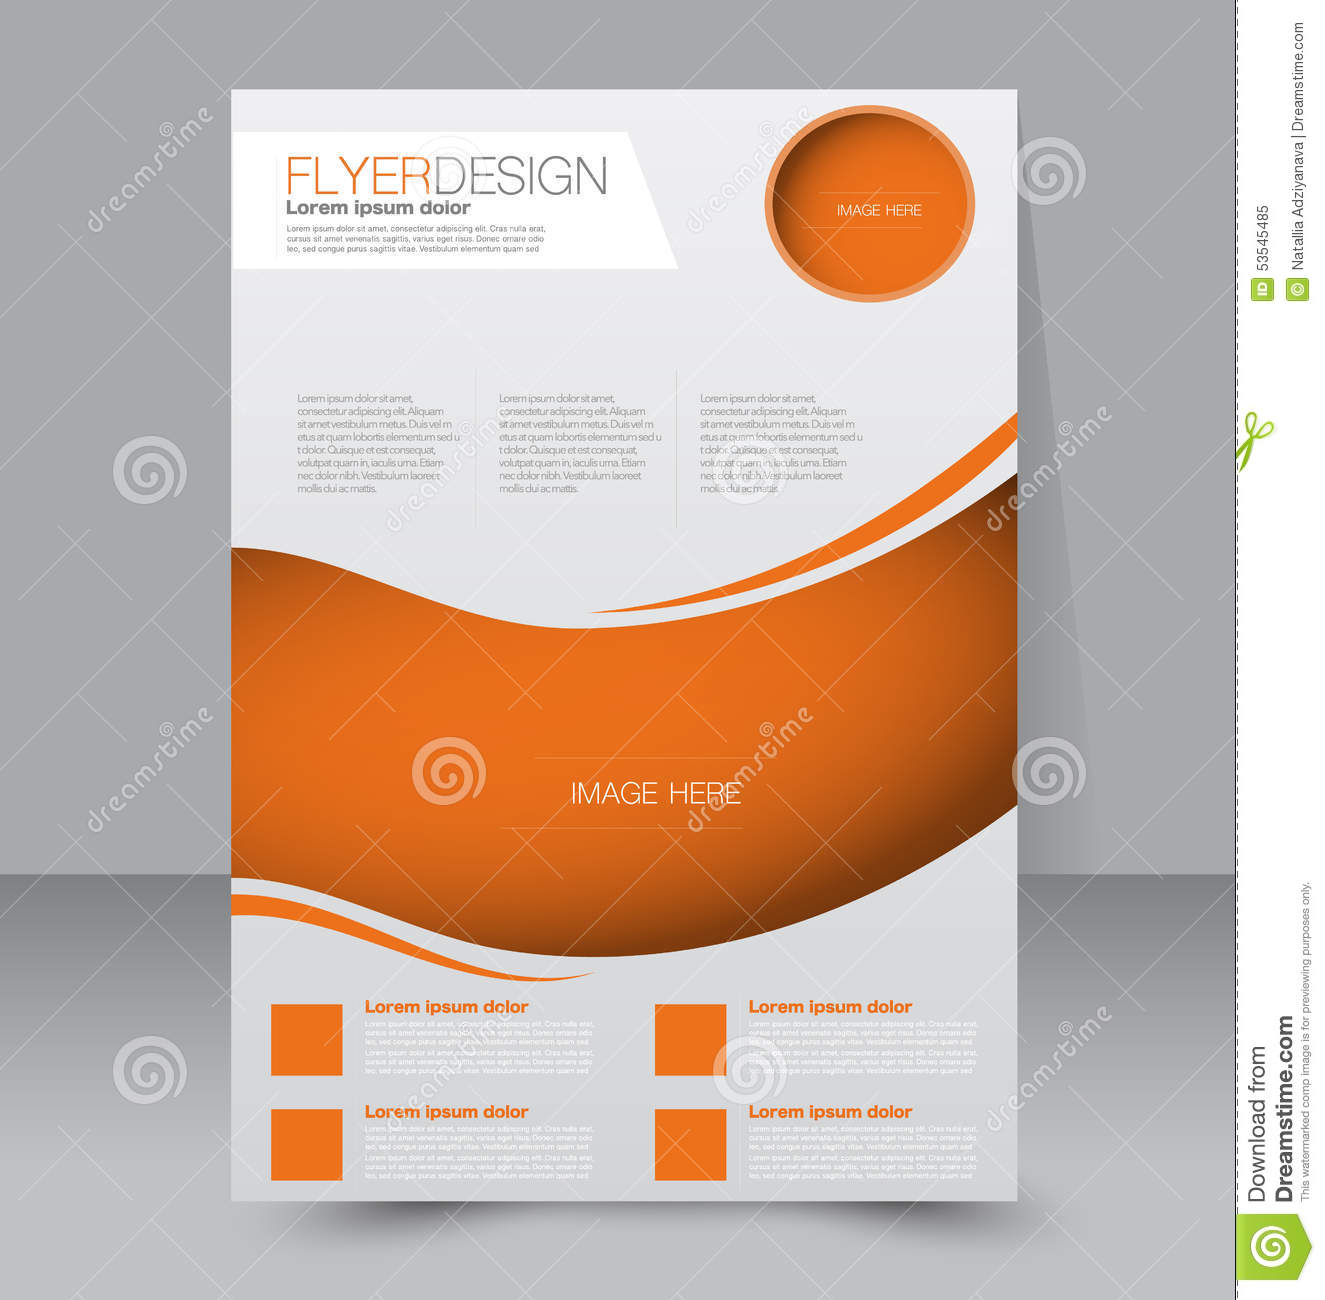 Flyer template business brochure editable a4 poster for Free business brochures templates